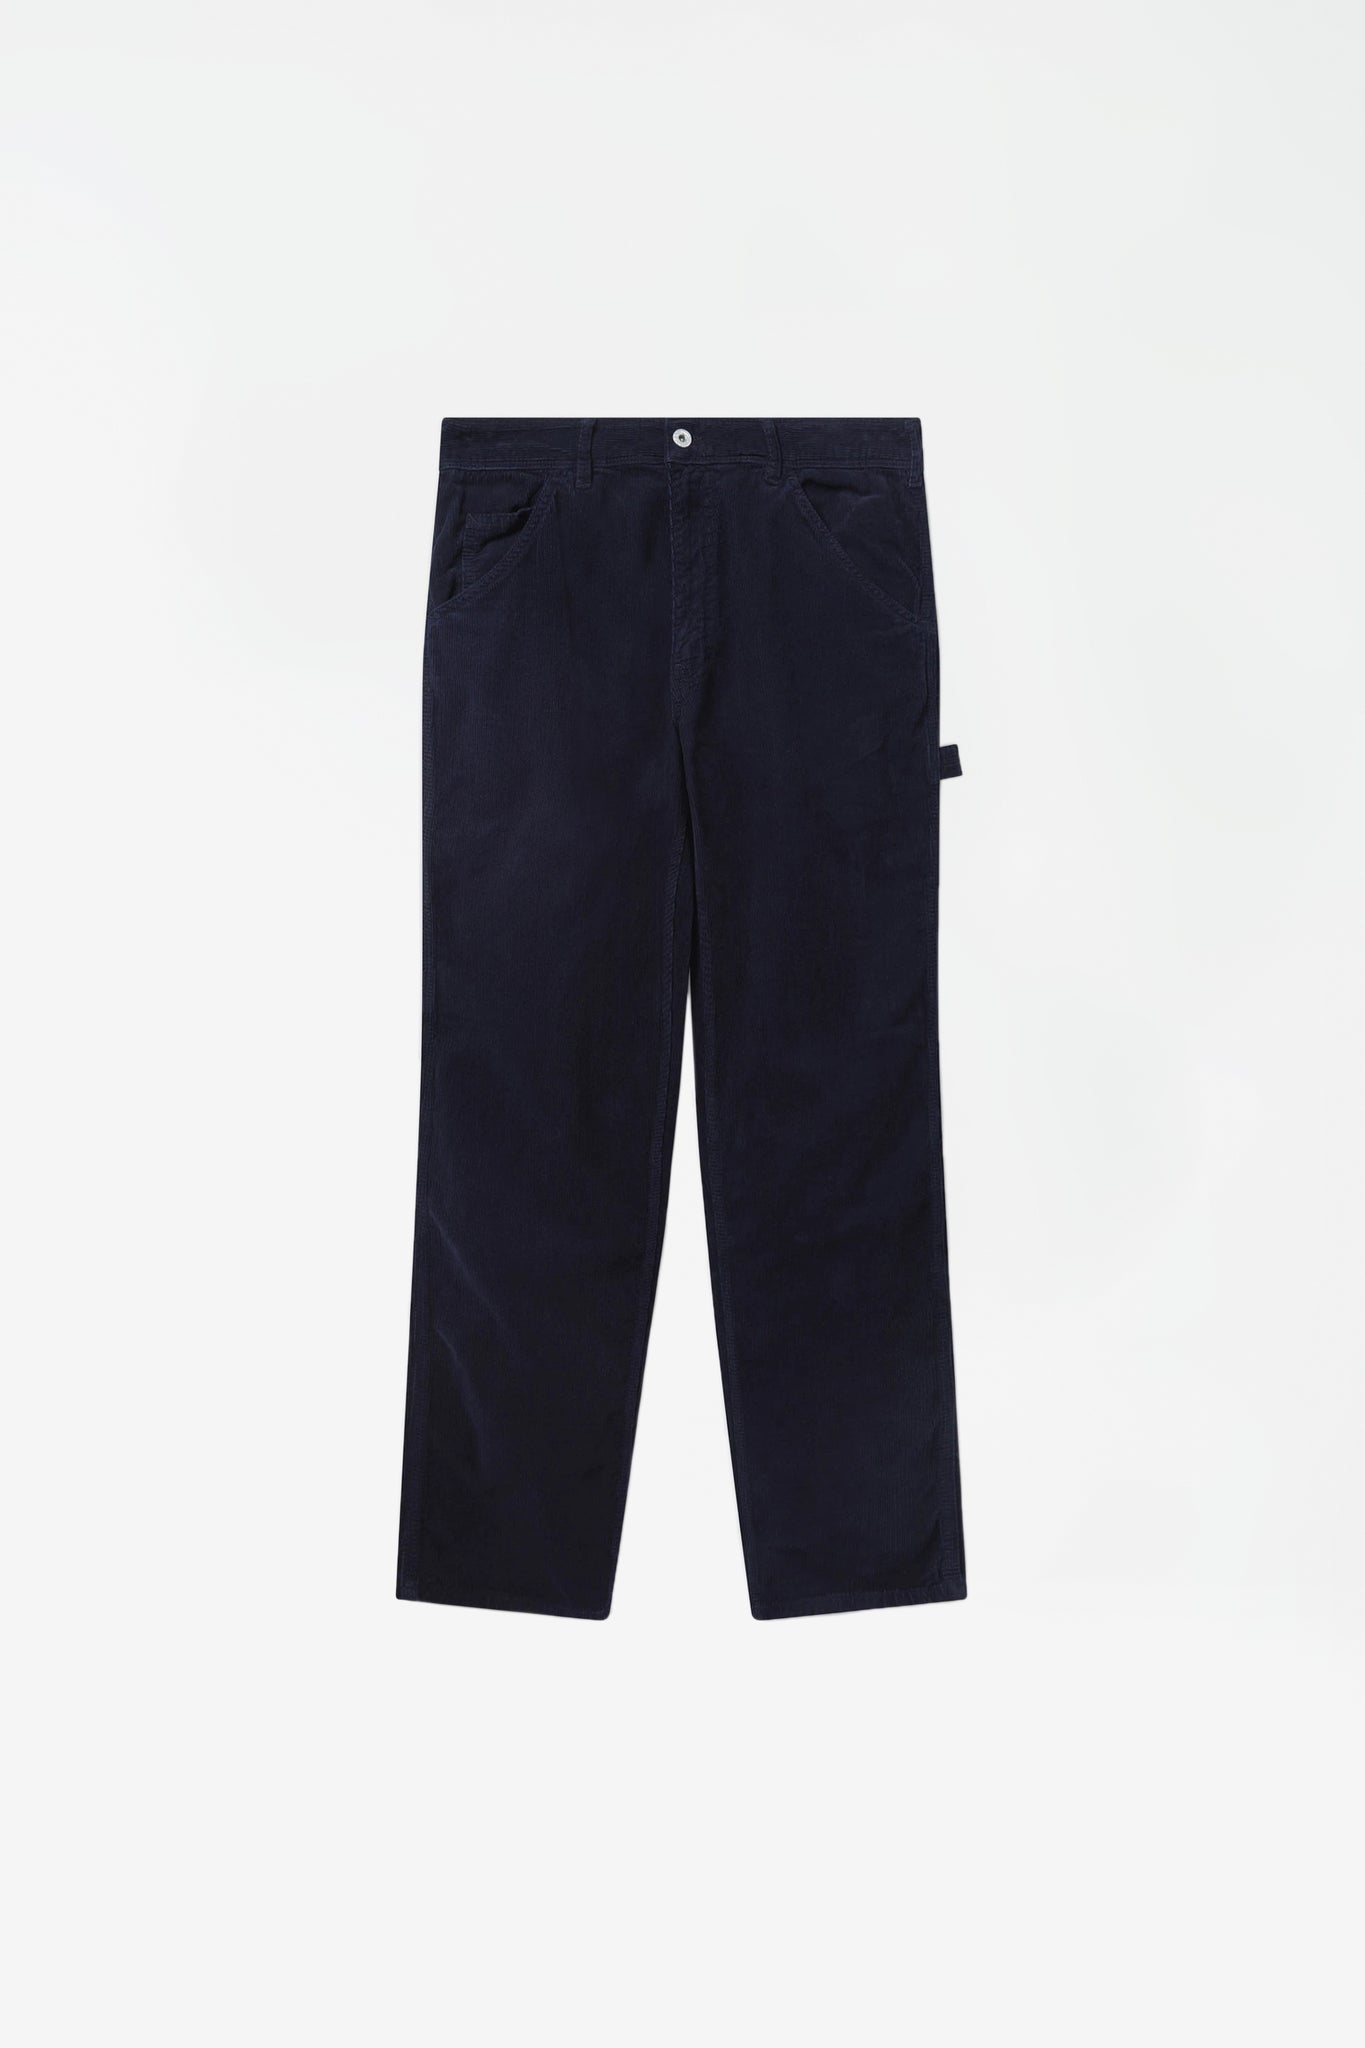 80s Painter pant navy cord